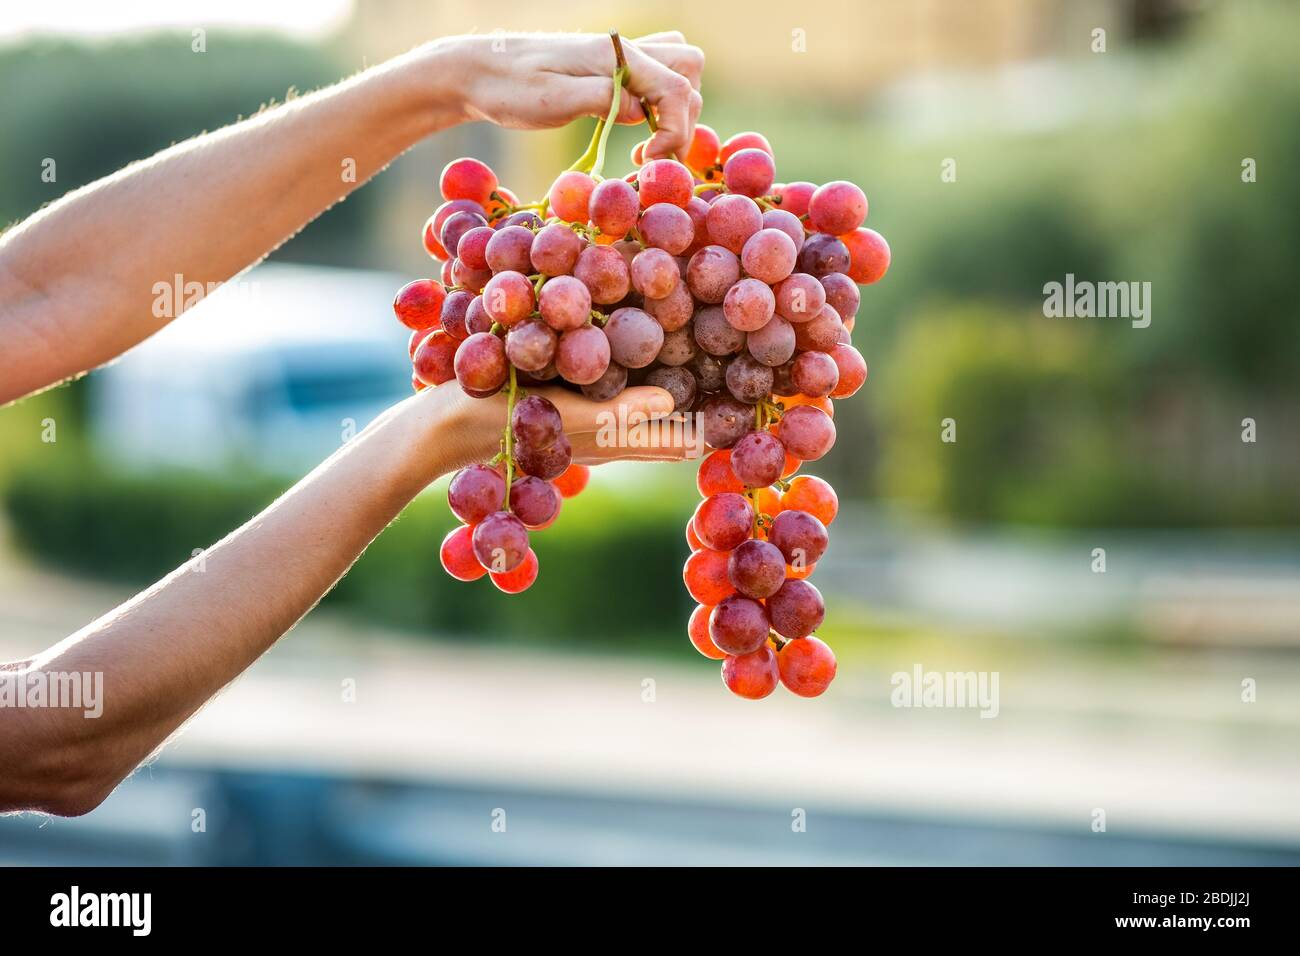 A woman holding big cluster of red juicy grapes in her hand Stock Photo - Alamy